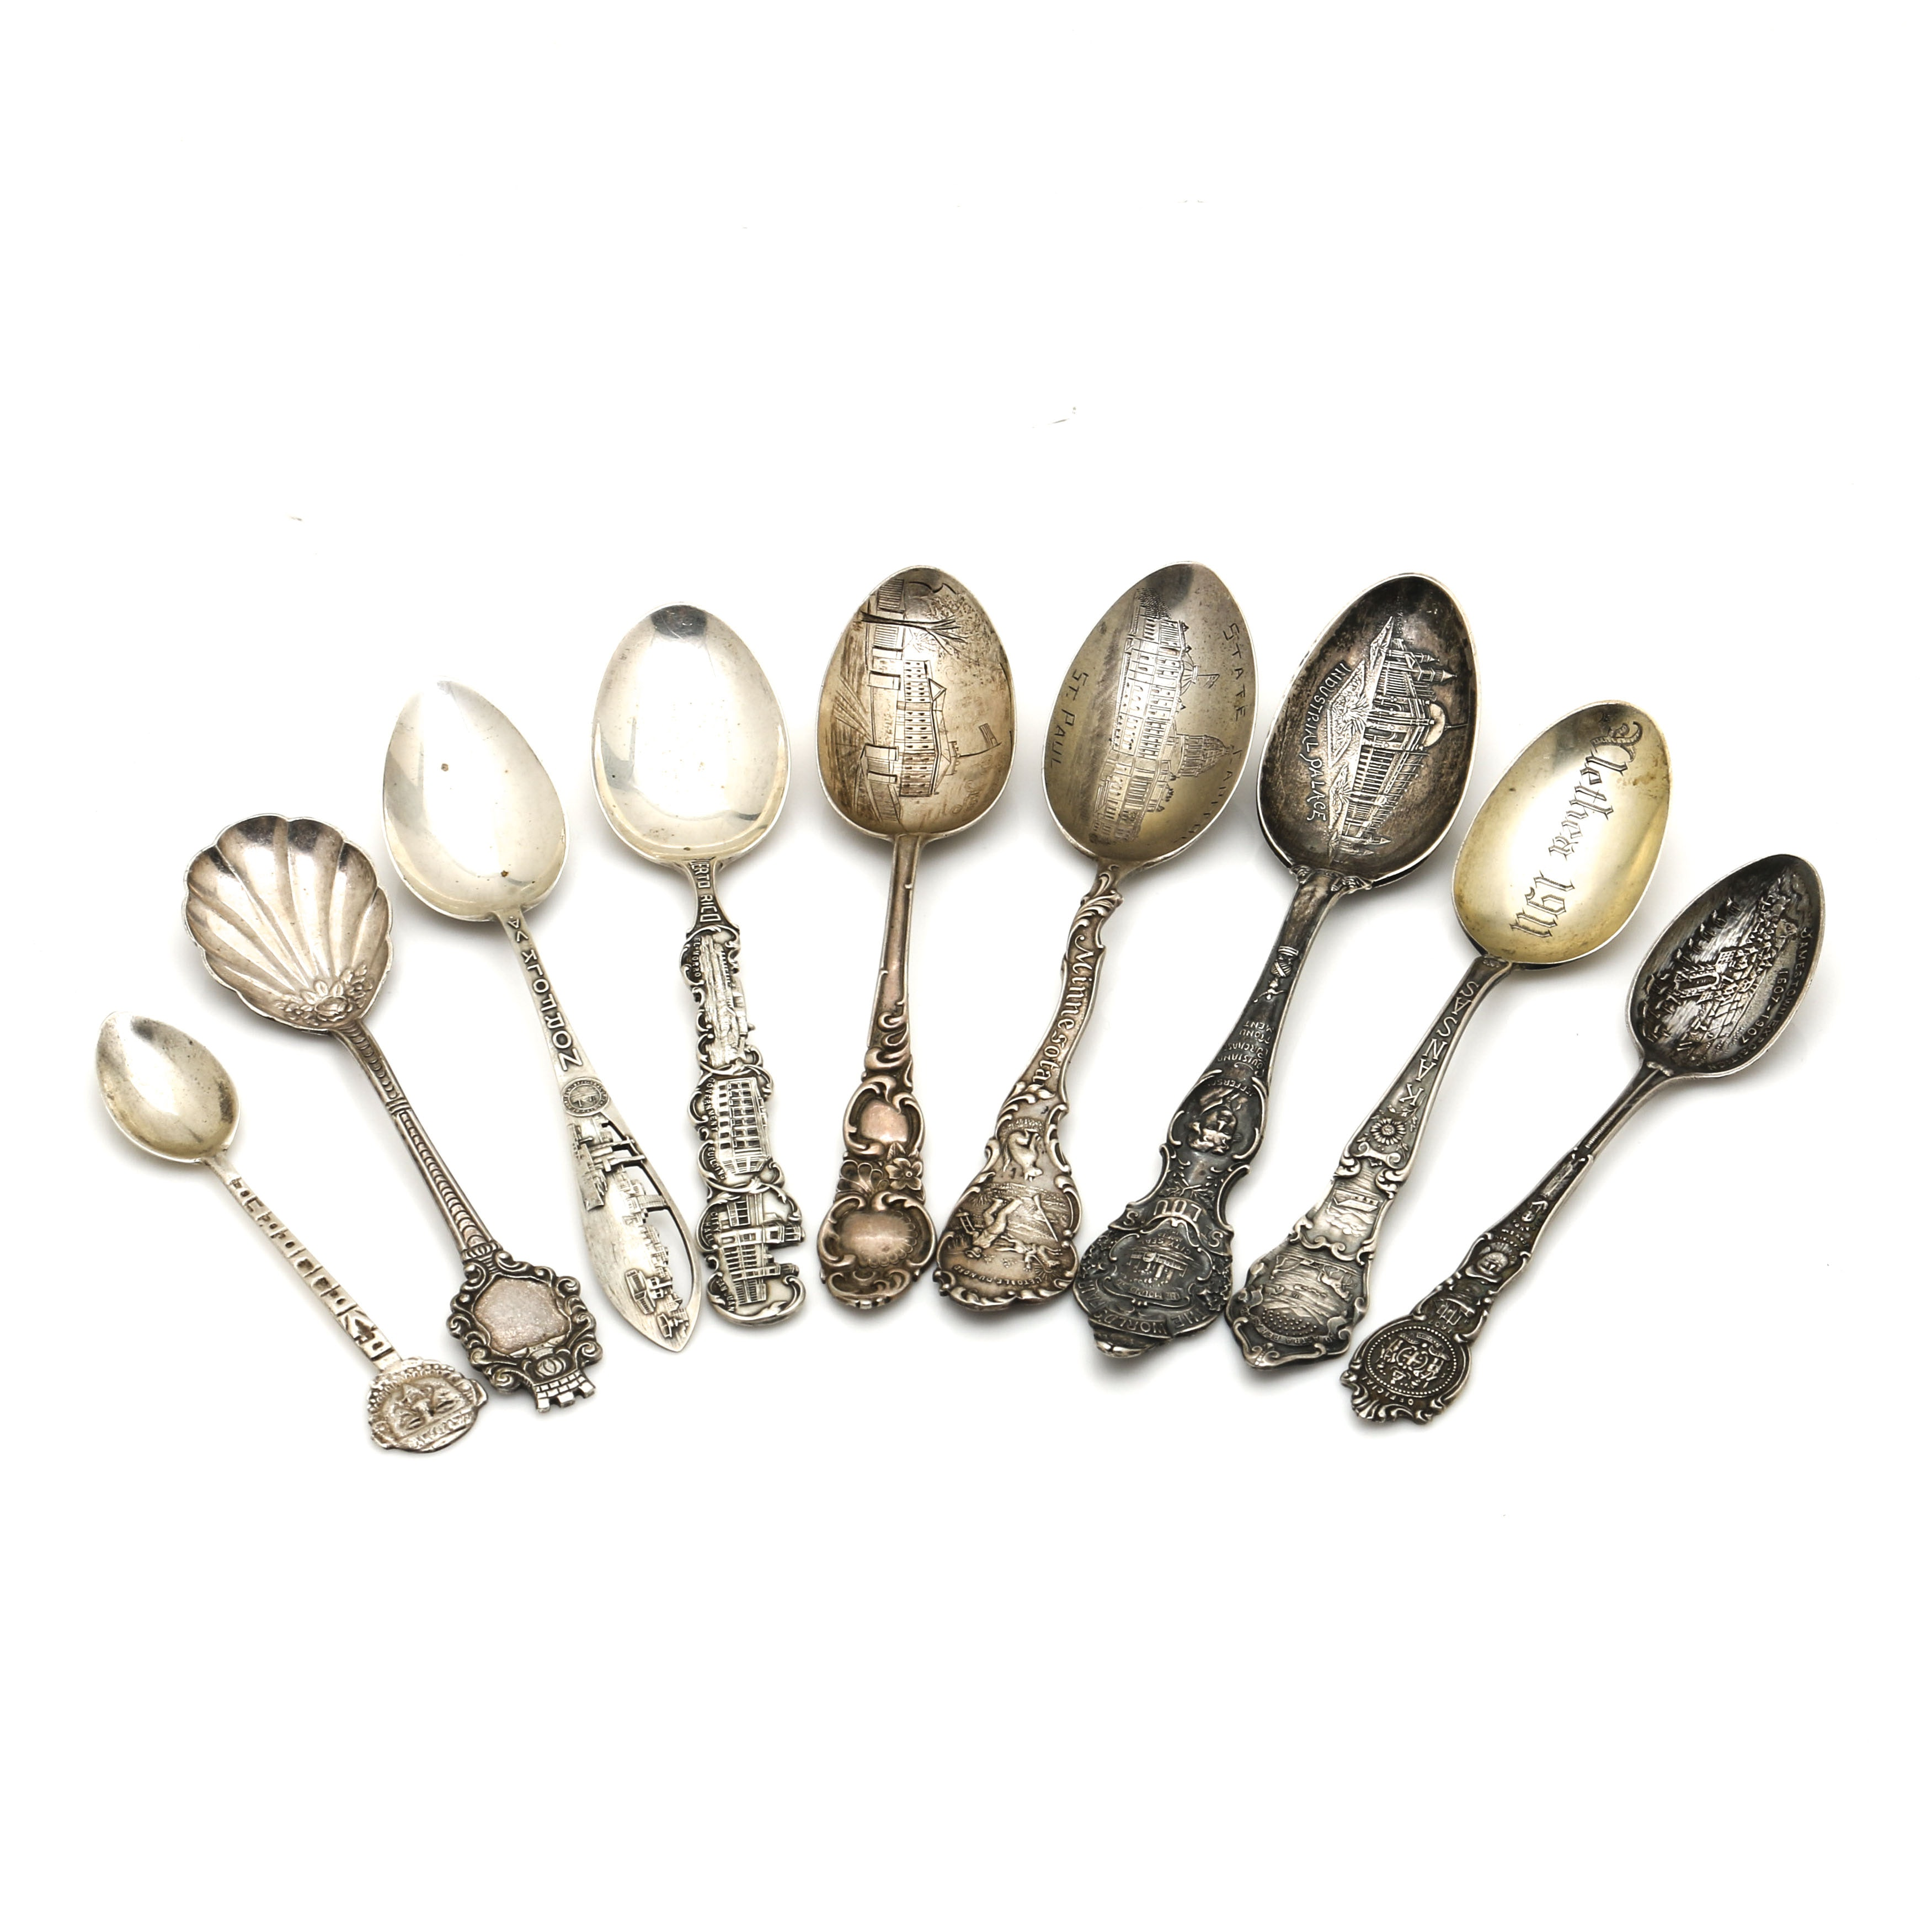 Charles M Robbins and Other Sterling and Plate Souvenir Spoons